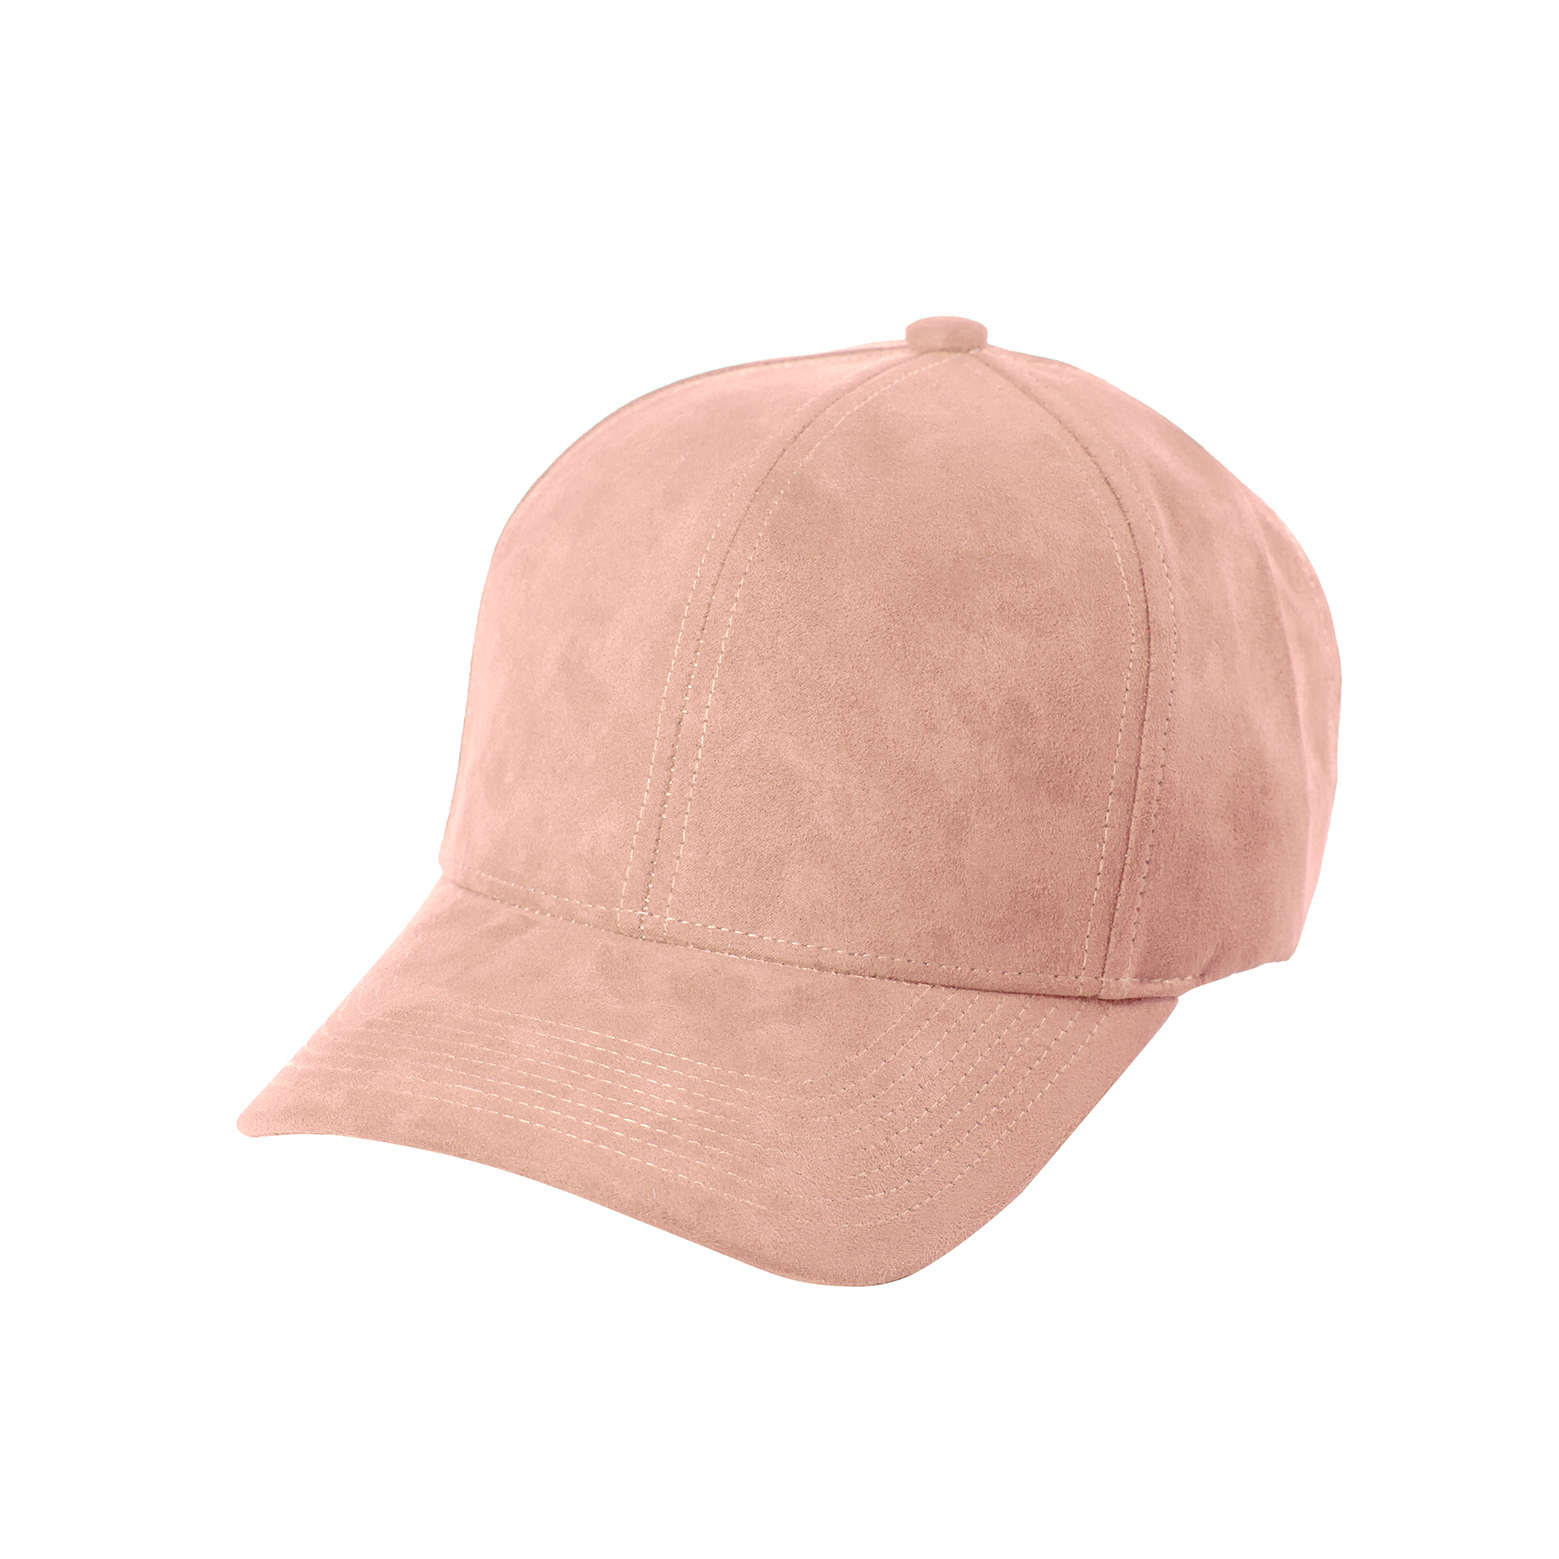 BASEBALL CAP CLOUD ROSE SUEDE FRONT SIDE